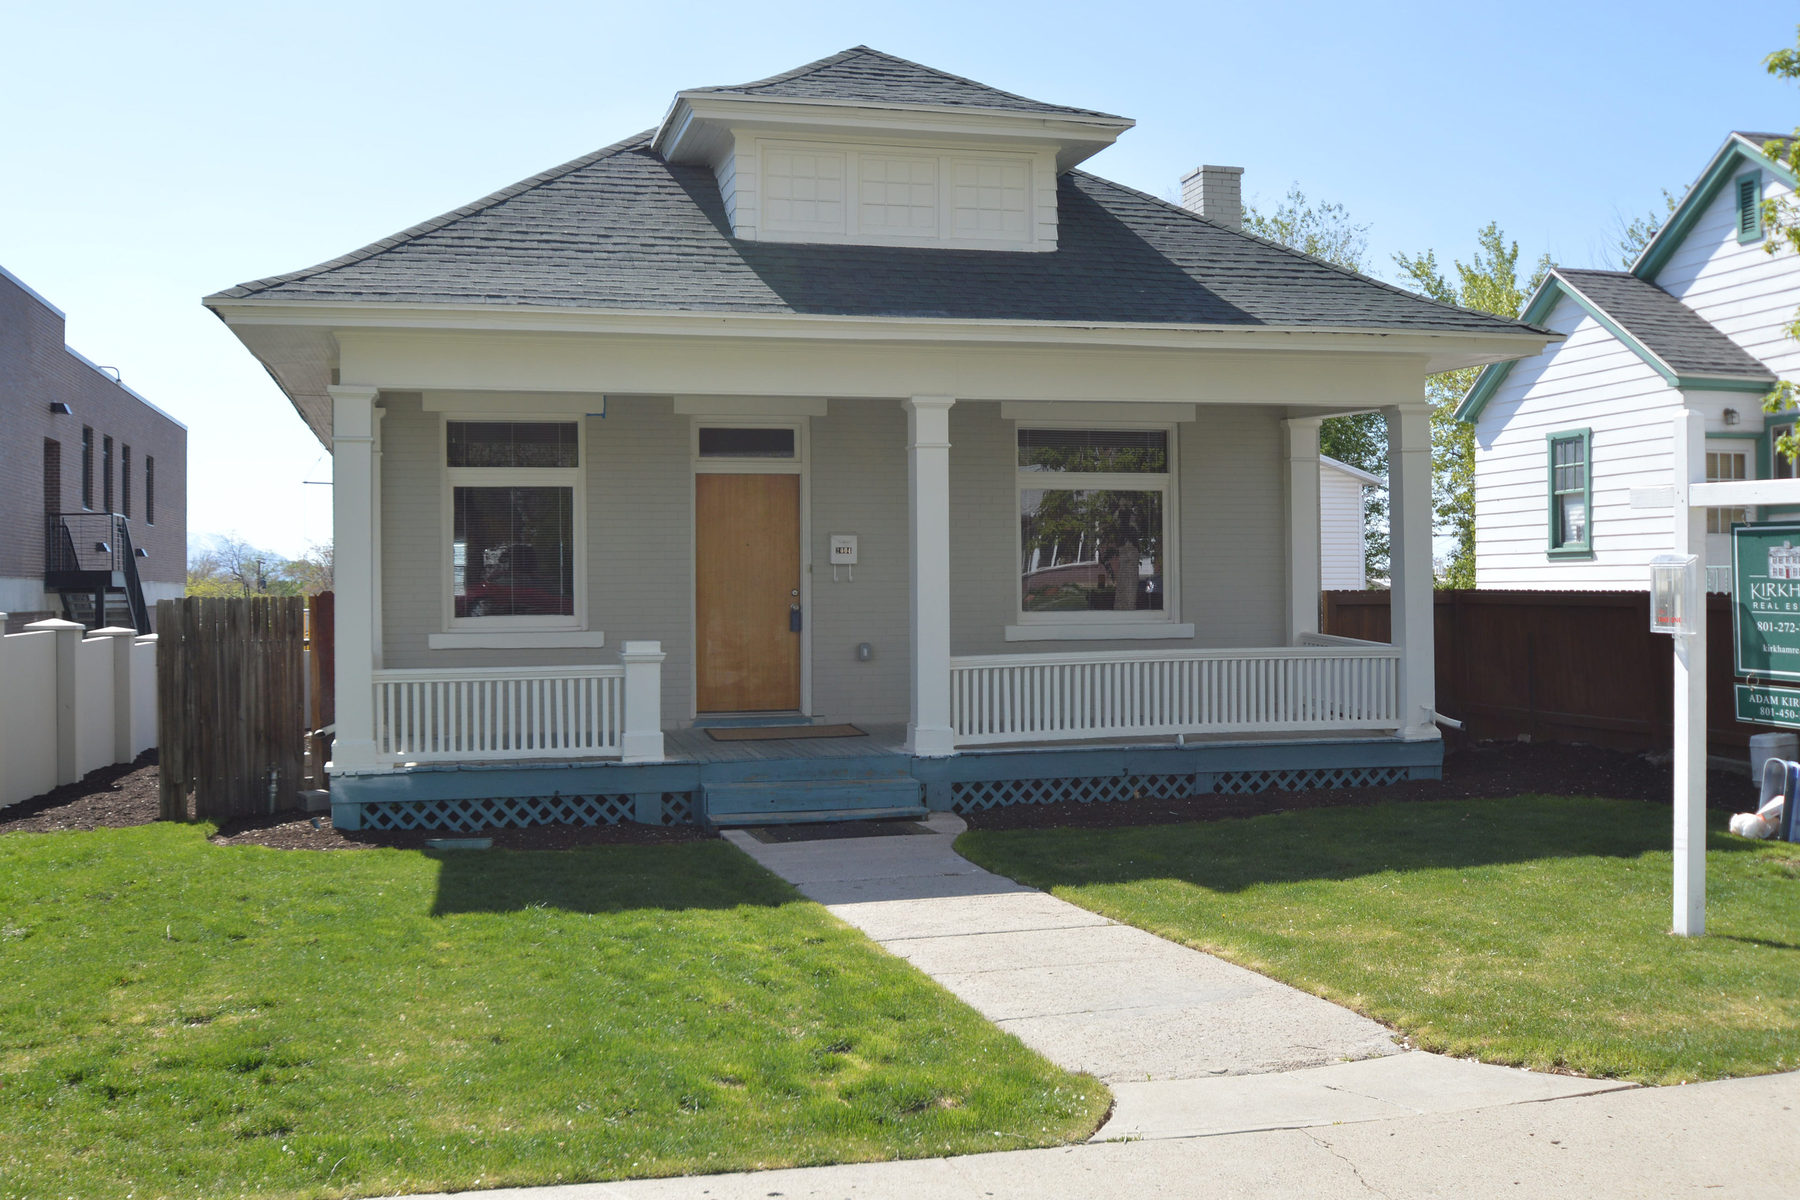 Single Family Home for Sale at Classic Sugarhouse Bungalow 2004 View St Salt Lake City, Utah 84105 United States